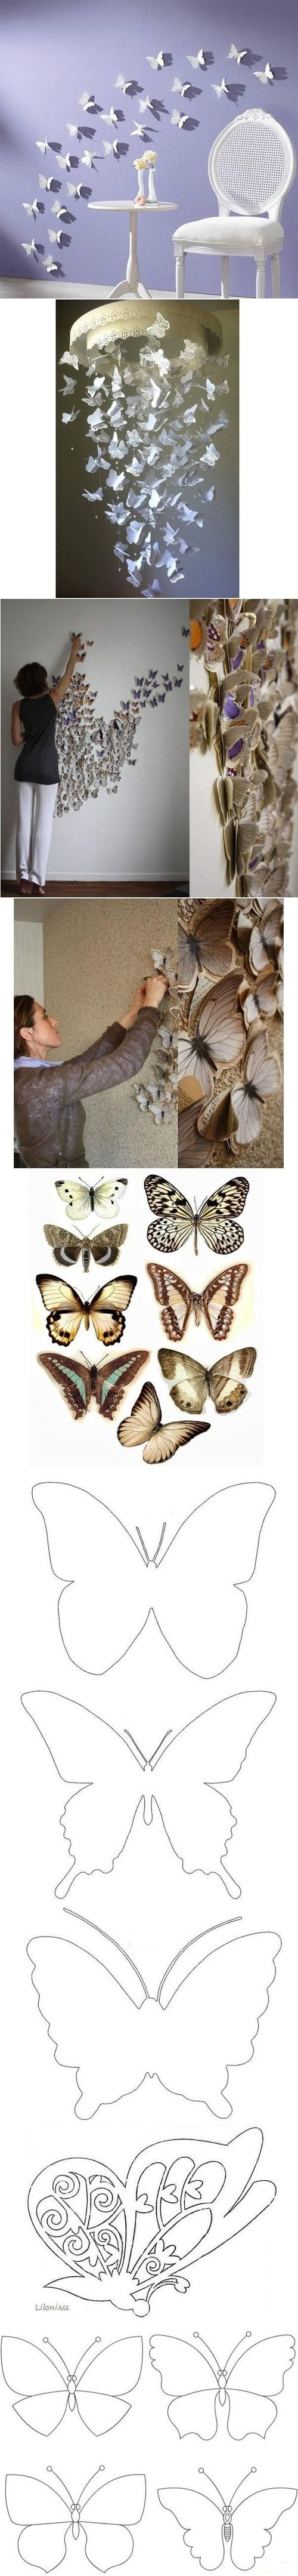 DIY Butterfly Pattern Wall Decoro